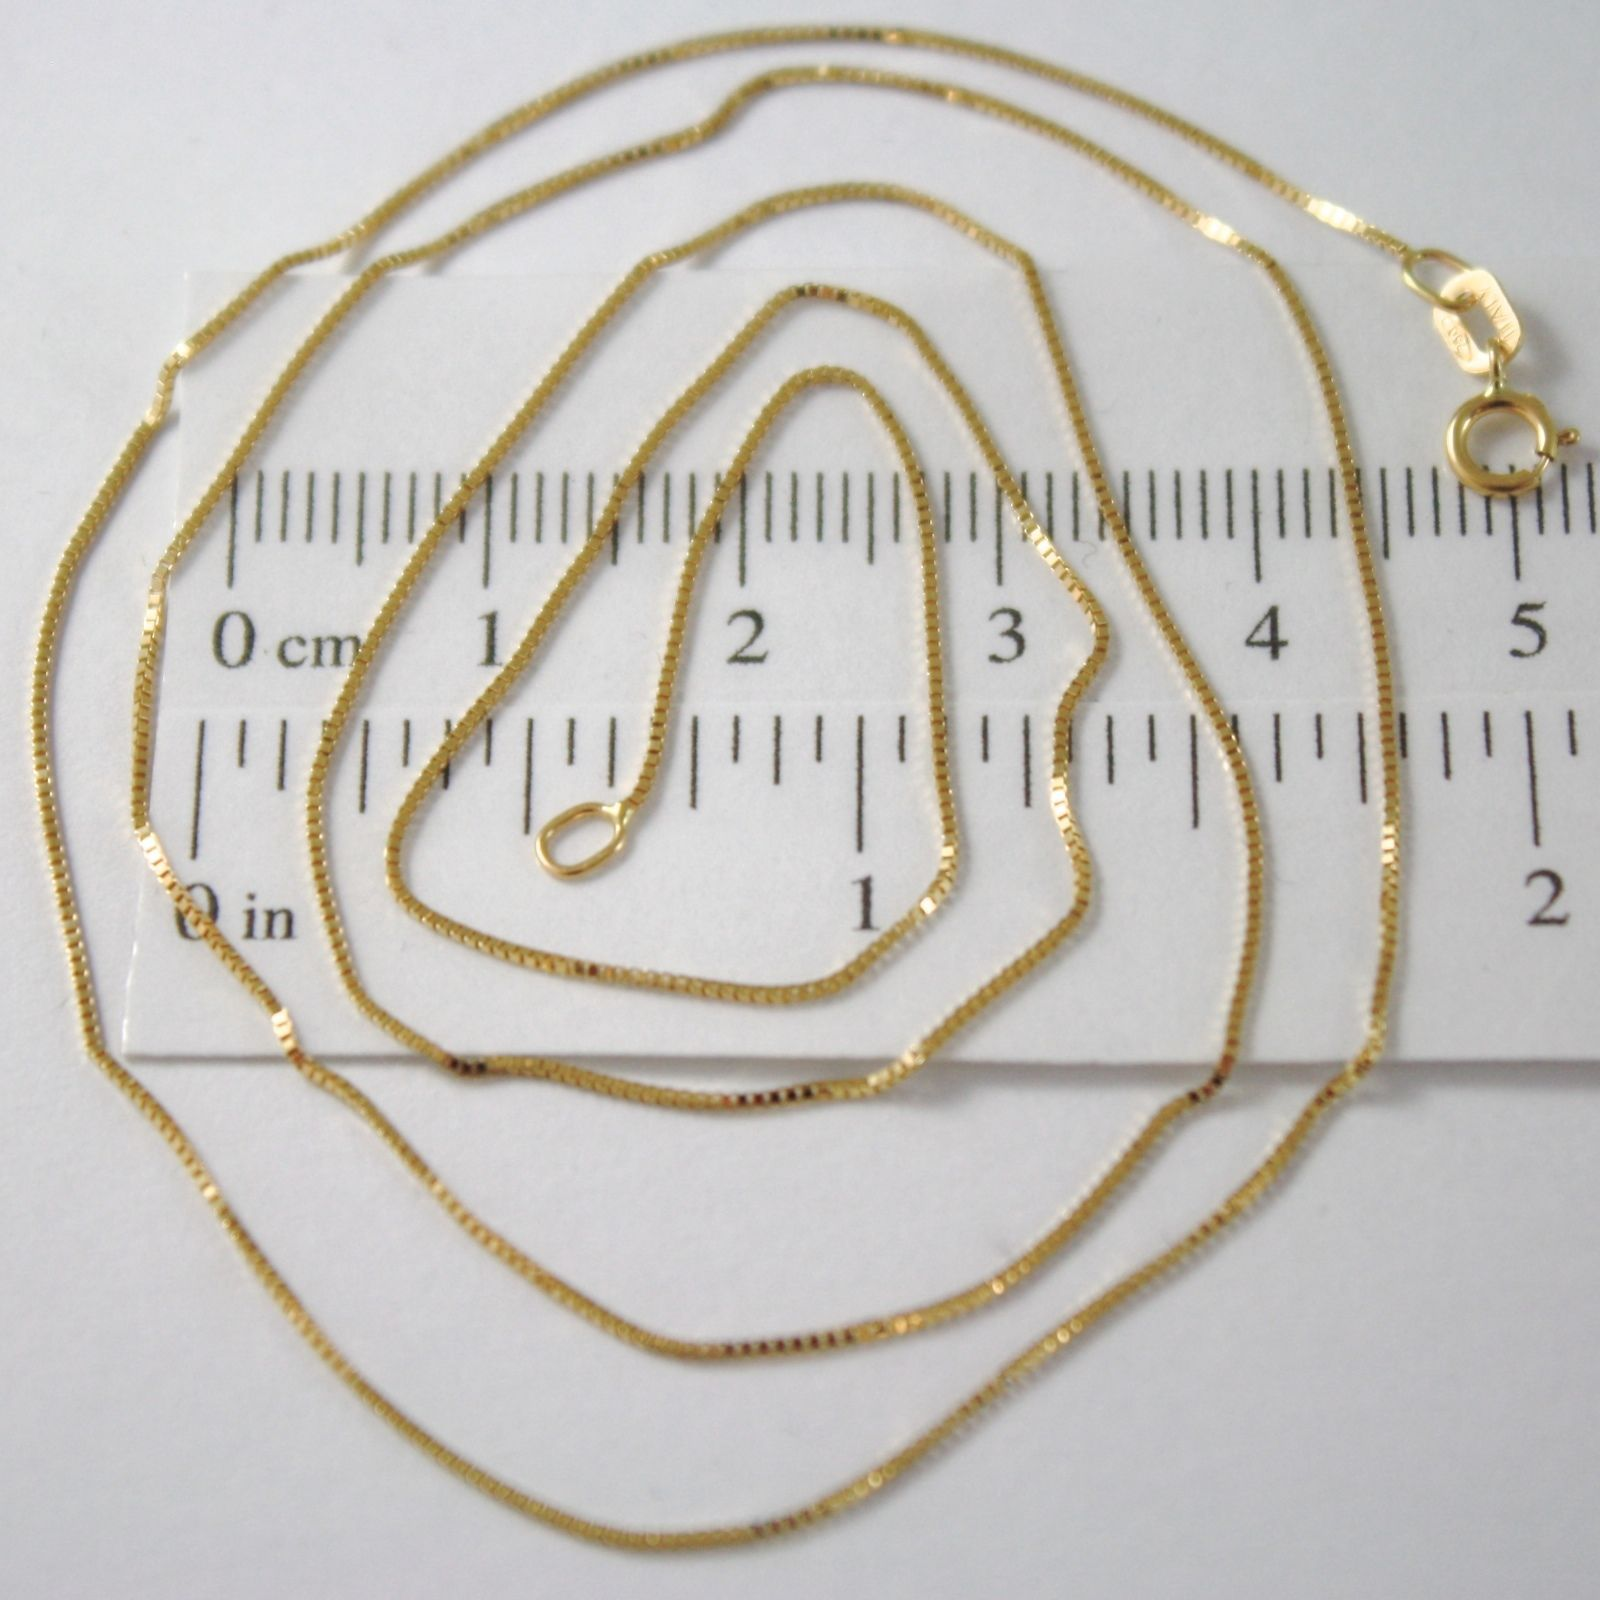 CHAIN VENETIAN SQUARED YELLOW GOLD 18K LENGTH 40 45 50 CM MADE IN ITALY